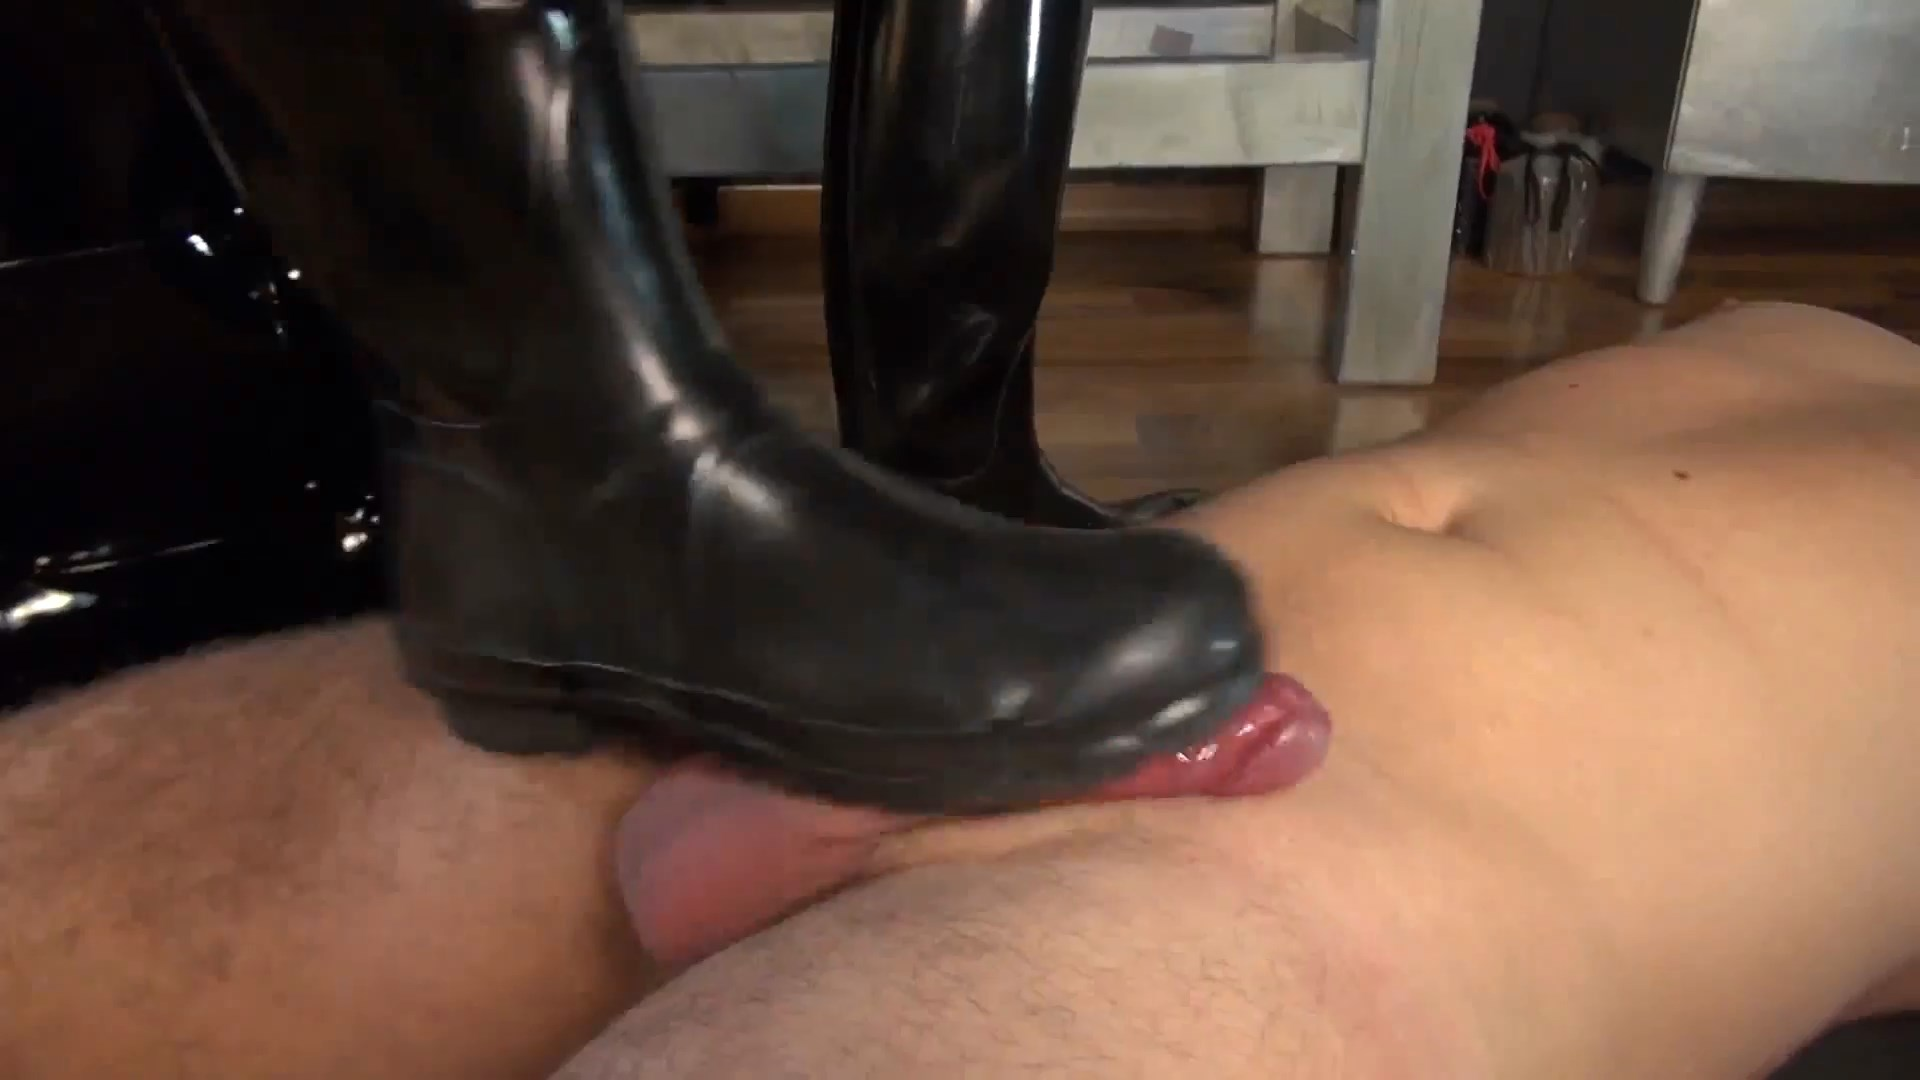 Cum On My Rubber Boots - Sperm Rubber Boots Cumshot - LADY VICTORIA VALENTE - FULL HD/1080p/MP4